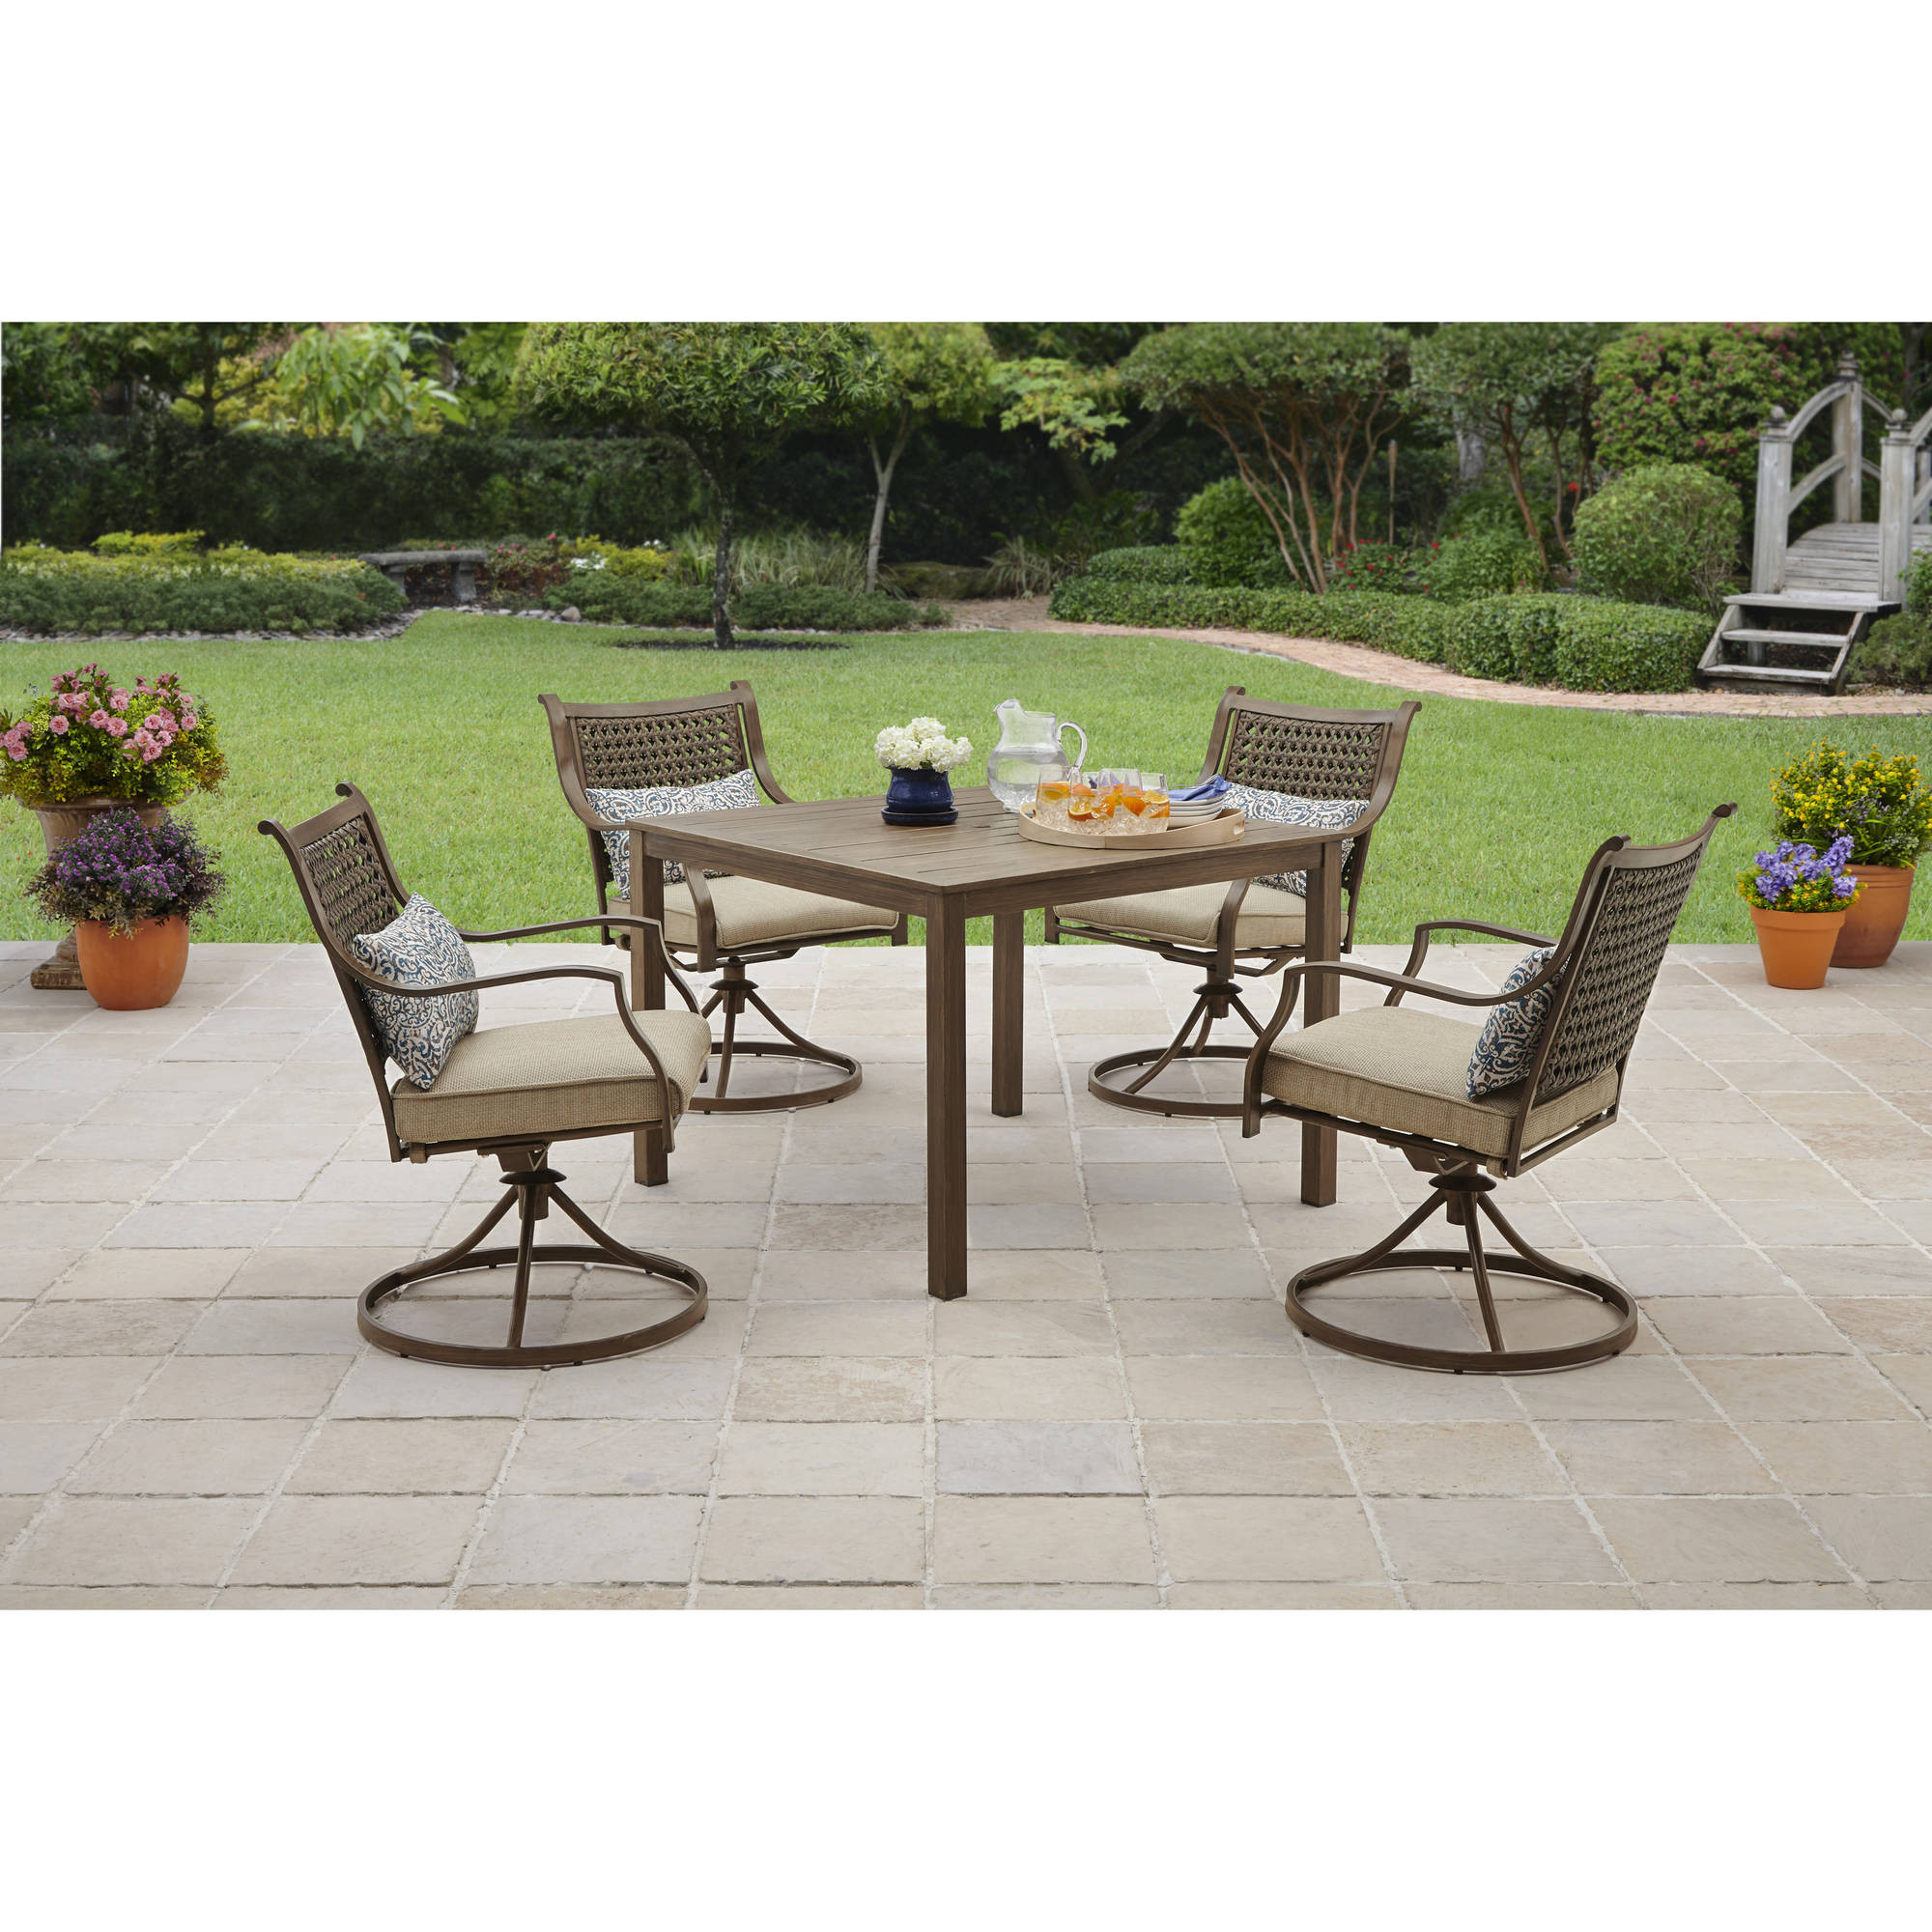 Best ideas about Wrought Iron Patio Furniture . Save or Pin Wrought Iron Patio Furniture Walmart Now.